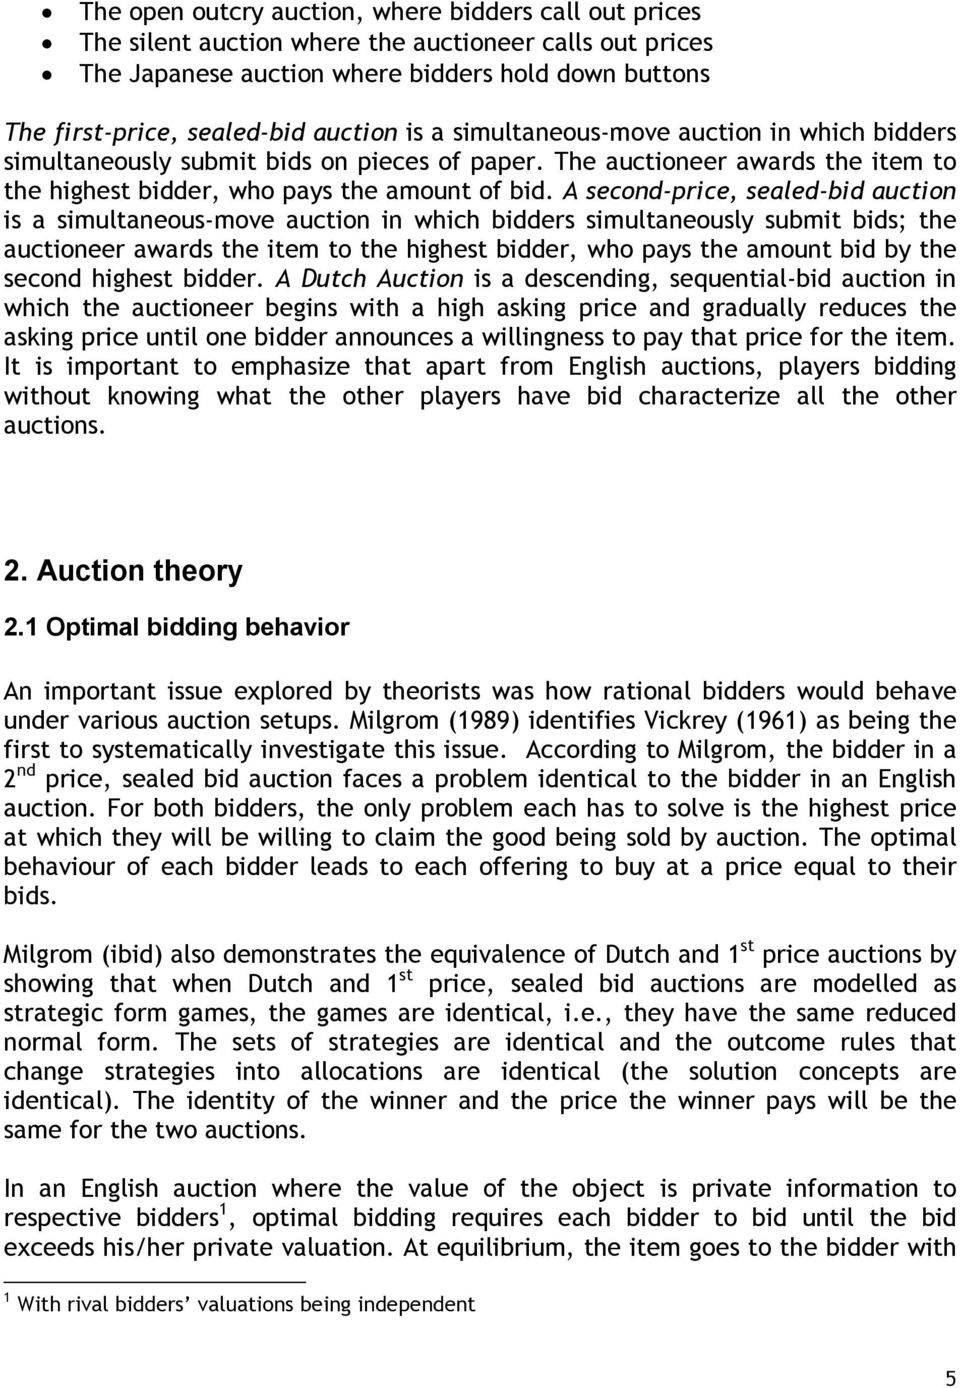 A second-price, sealed-bid auction is a simultaneous-move auction in which bidders simultaneously submit bids; the auctioneer awards the item to the highest bidder, who pays the amount bid by the